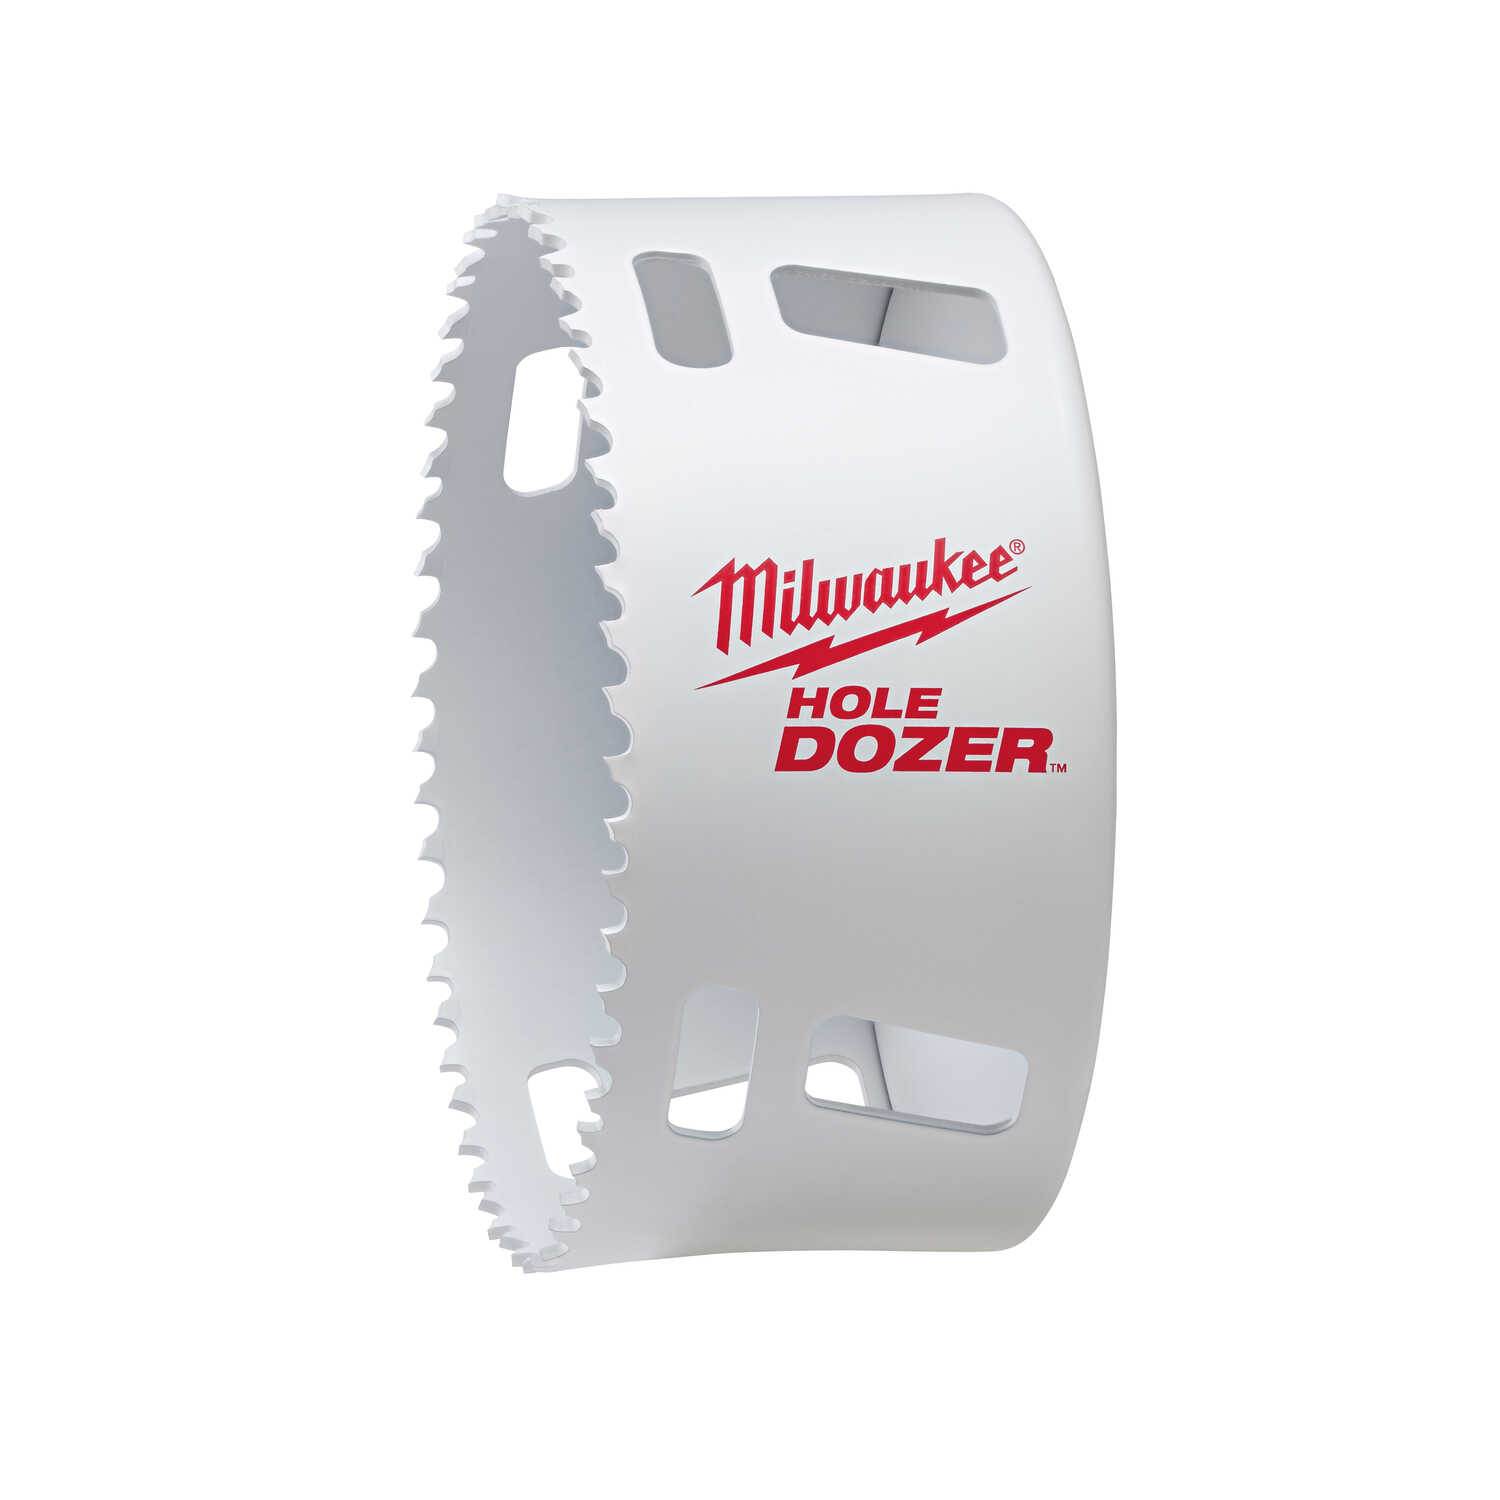 Milwaukee  Hole Dozer  4-1/4 in. Dia. x 2.6 in. L Bi-Metal  Hole Saw  1/4 in. 1 pc.